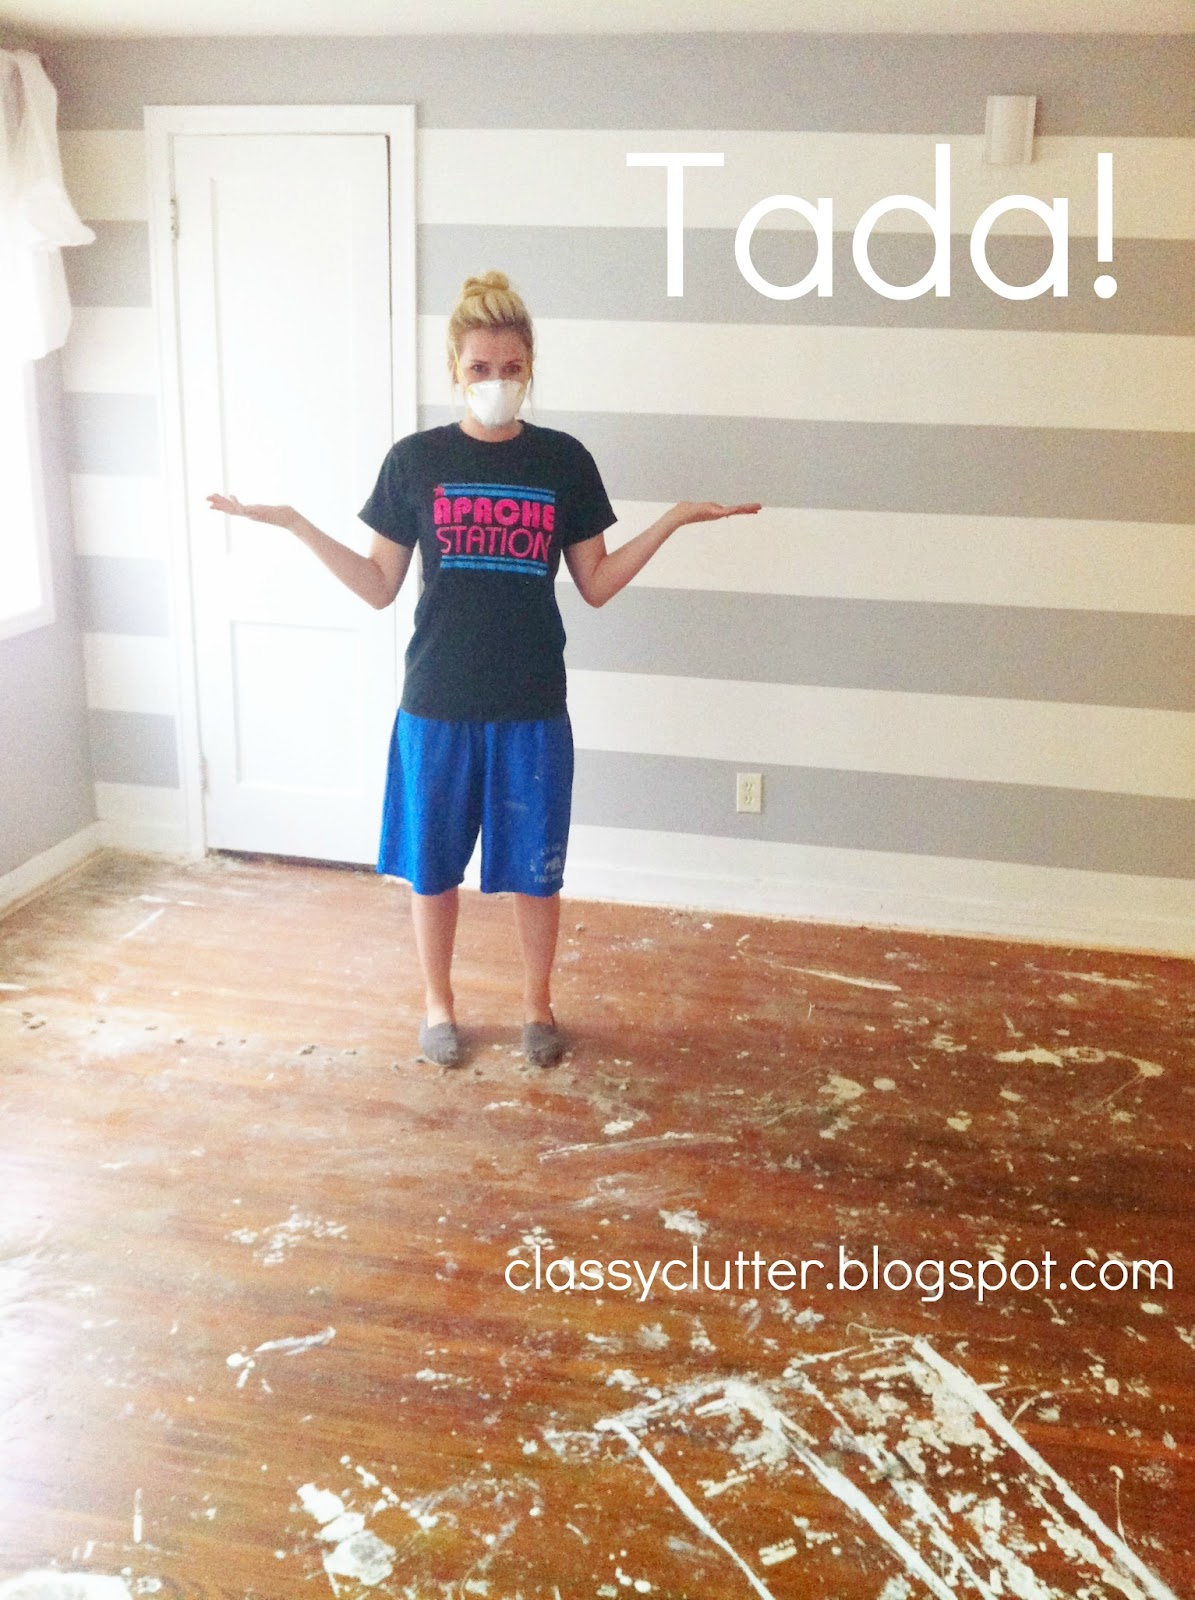 Do You See All That Paint On The Floor It Looked Like People Who Renovated House Knew They Were Going To Lay Carpet Down After Painted